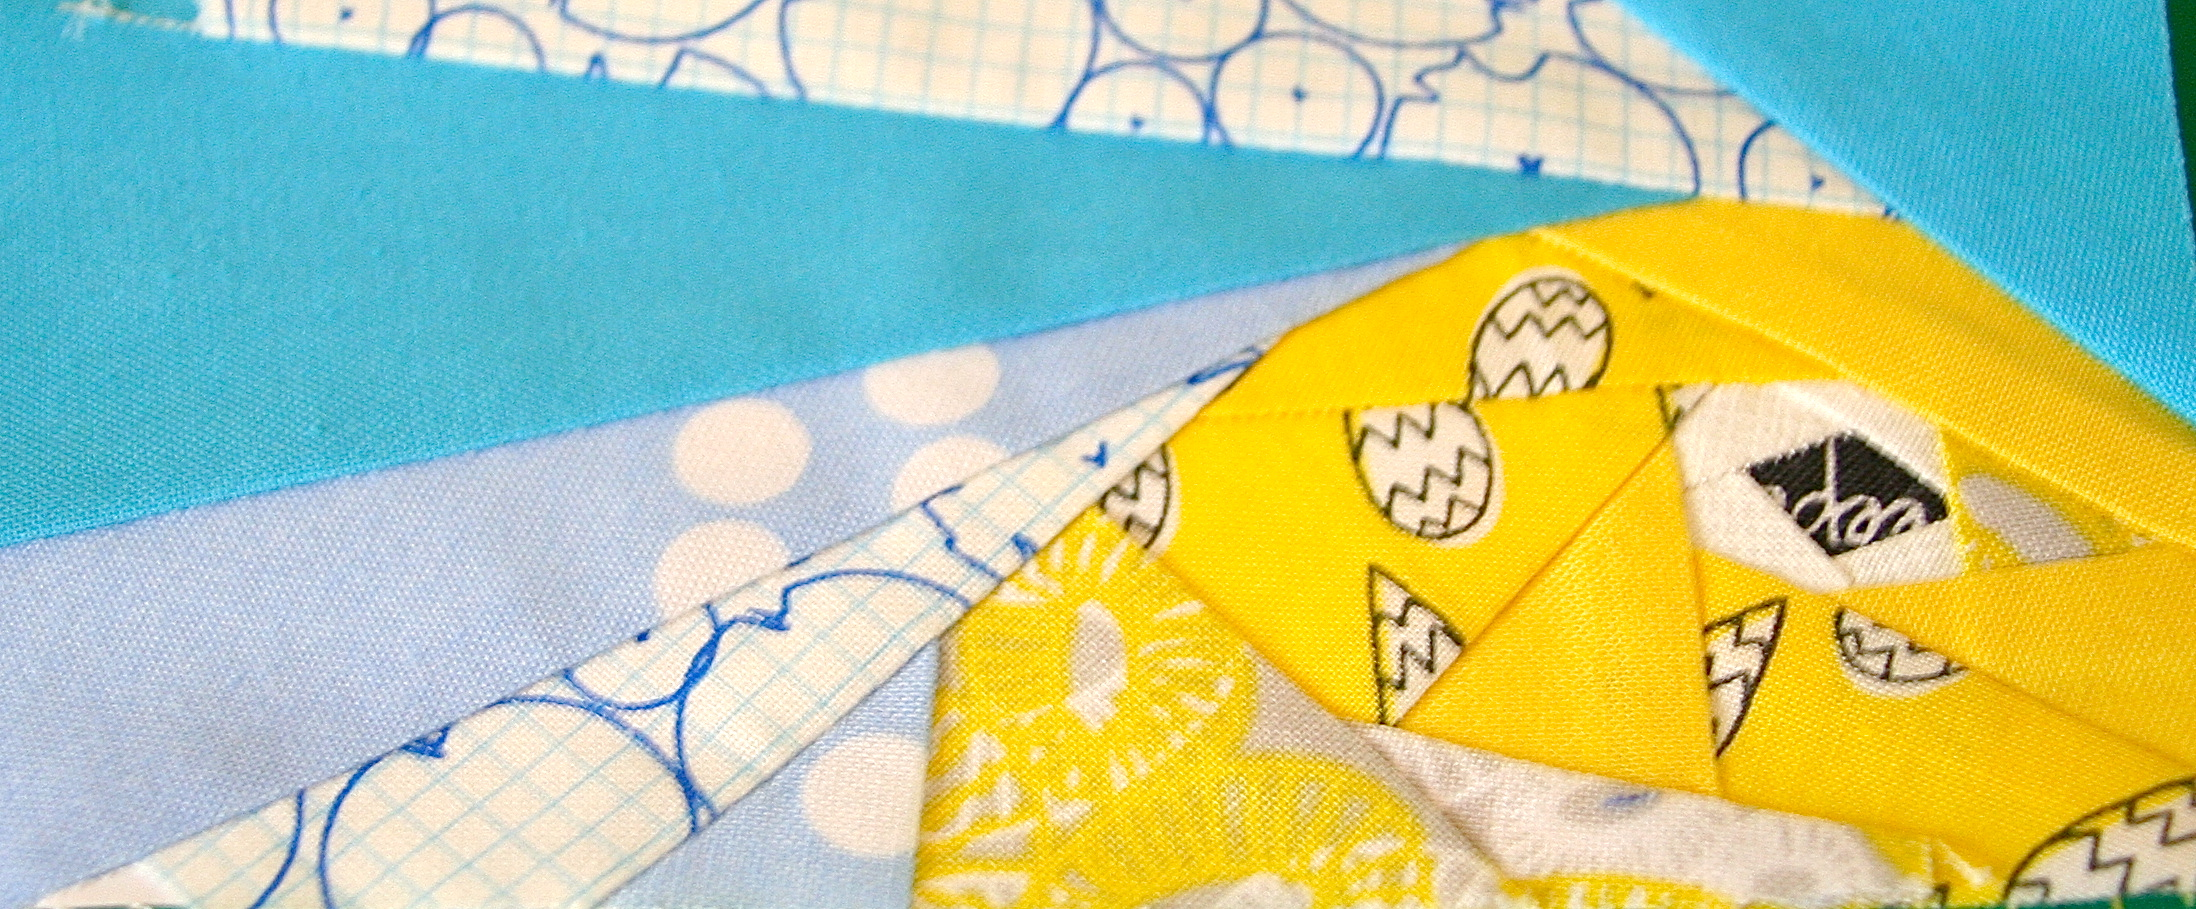 WiP Wednesday: New quilt/block and Sewing room ideas | Factotum of Arts